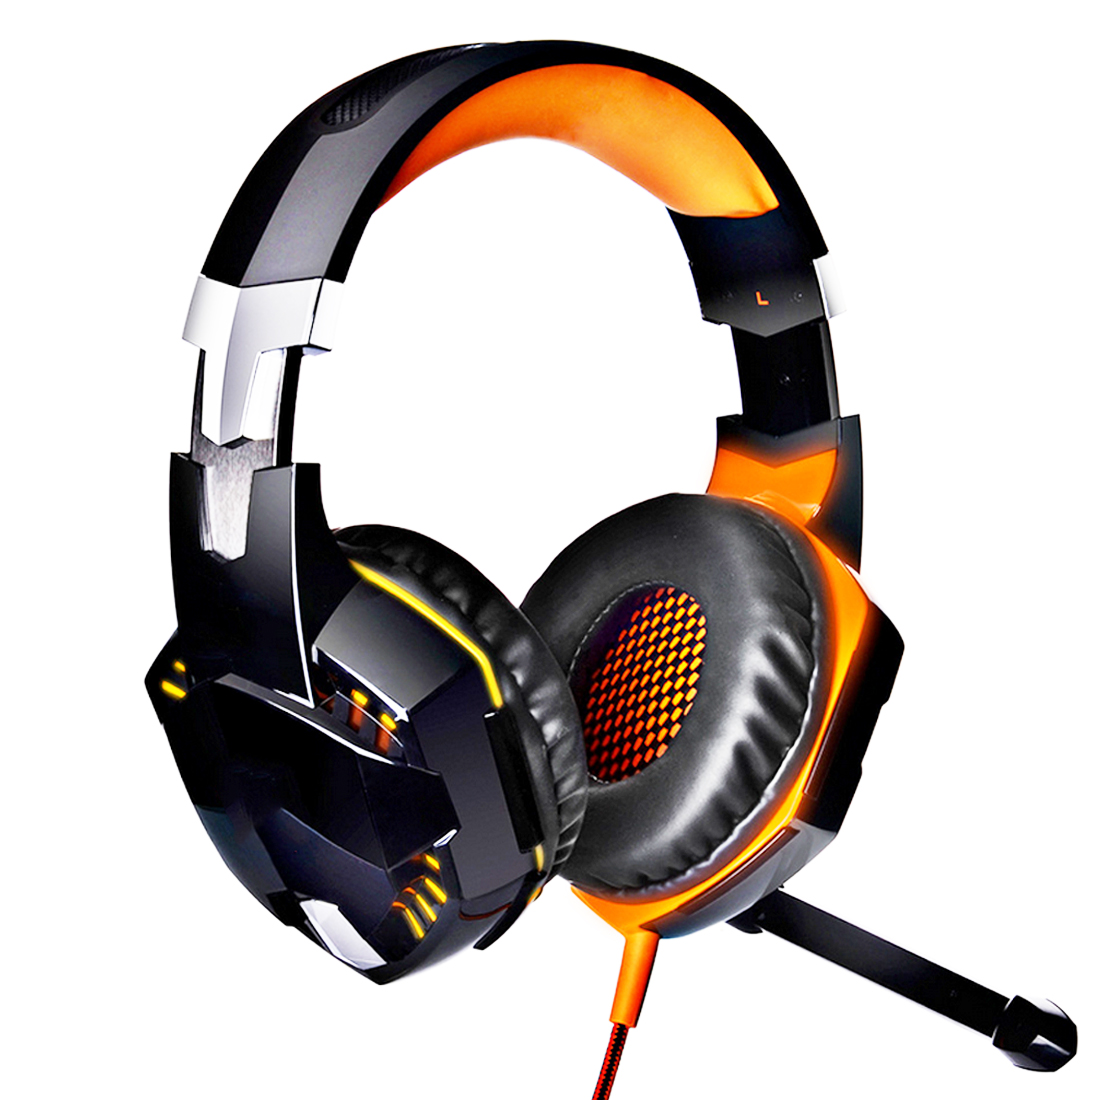 Marsnaska  Wire Gaming Headphone Gaming Headset Over Ear casque gamer Game Headphone With Microphone Mic LED light for PC philips shg7210 professional game headphones with microphone wire control headphone for xiaomi mp3 official verification